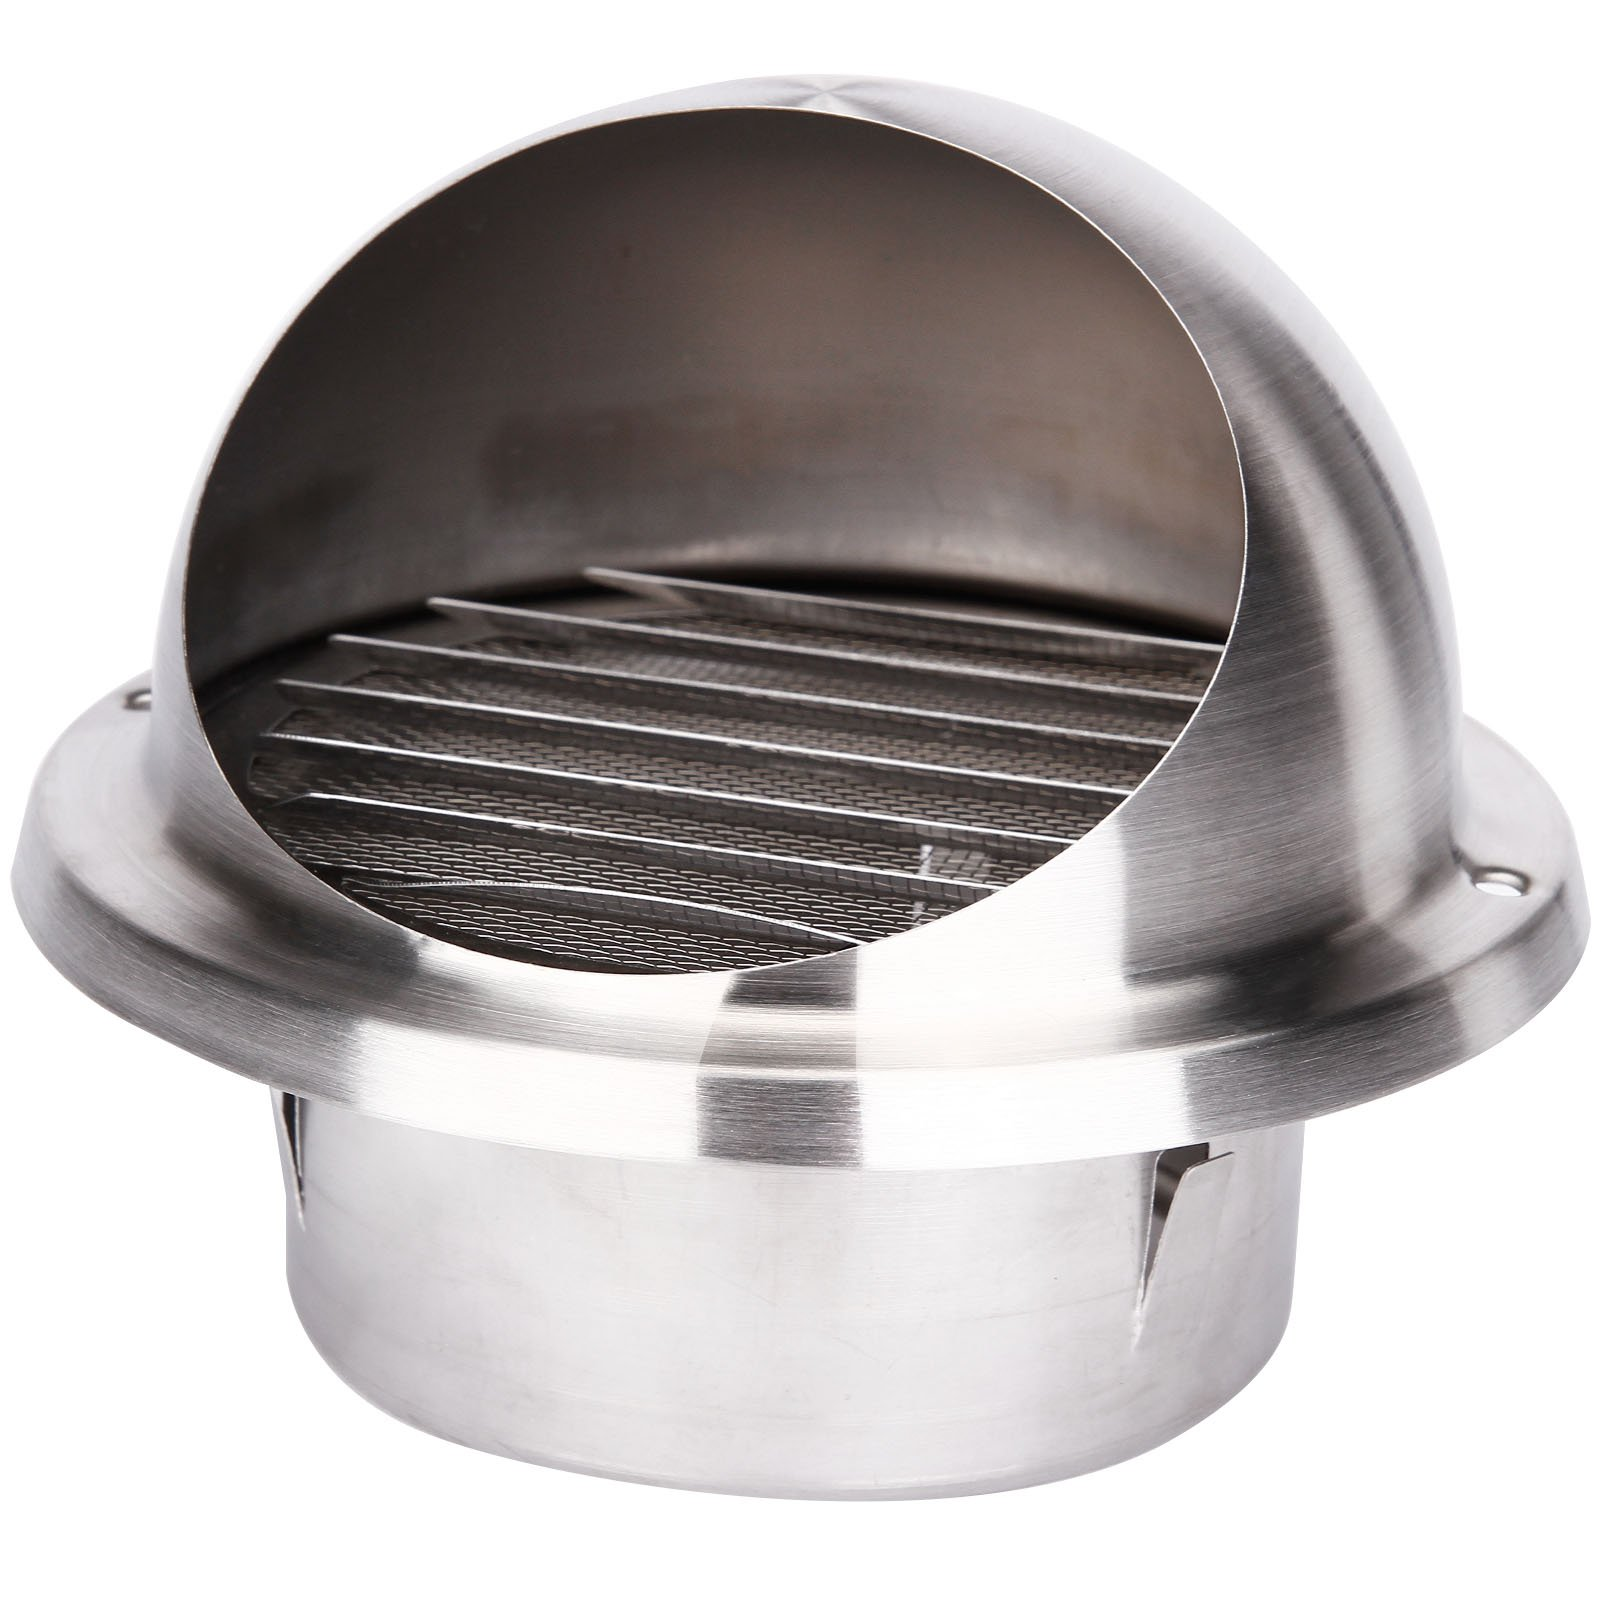 Surepromise 304 Stainless Steel Wall Air Vent Metal Cover Outlet Exhaust Grille 150MM / 6'' ball